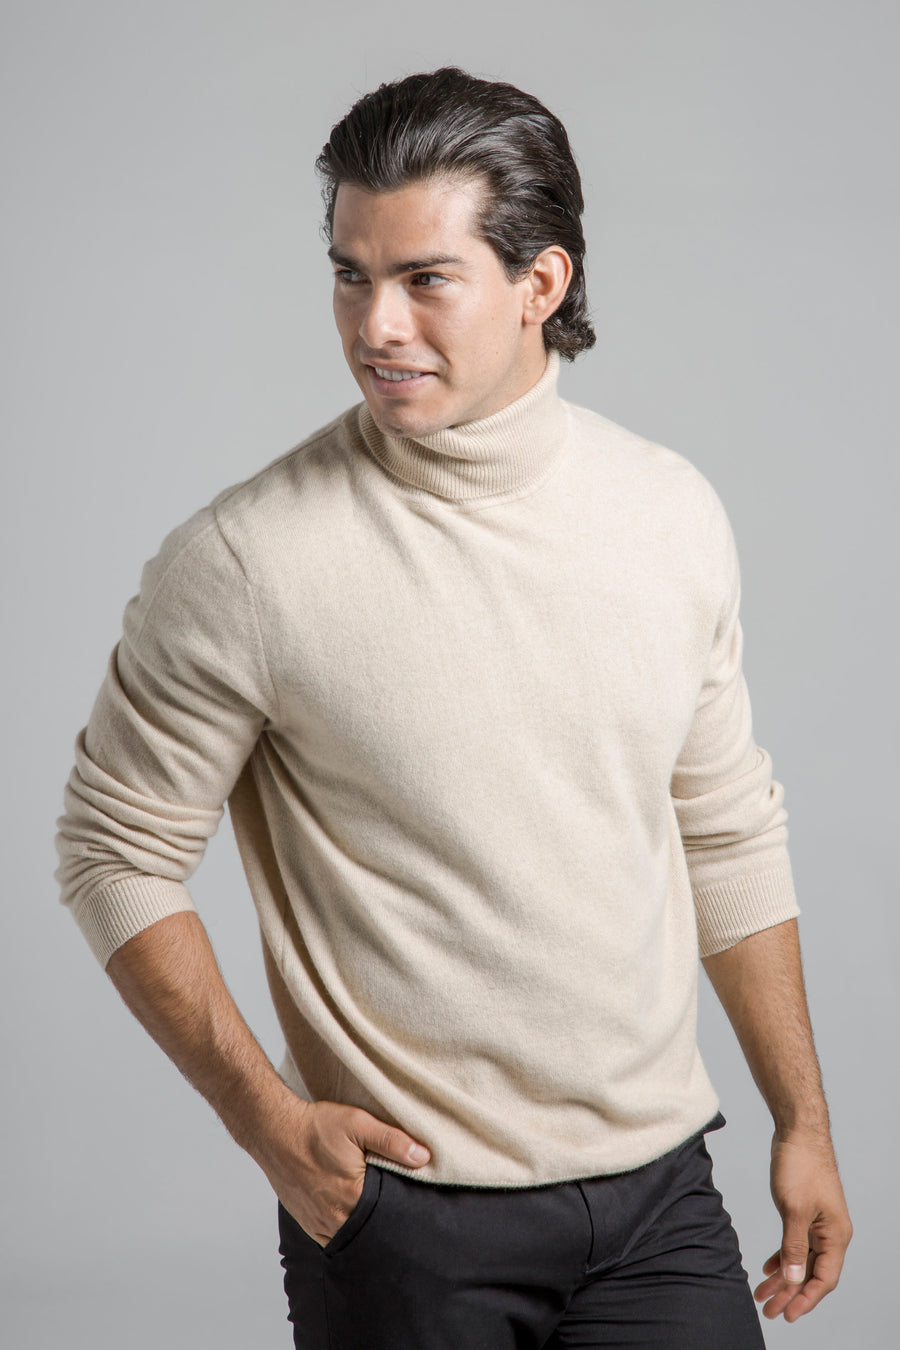 pine cashmere mens classic 100% pure organic cashmere turtleneck sweater in tan